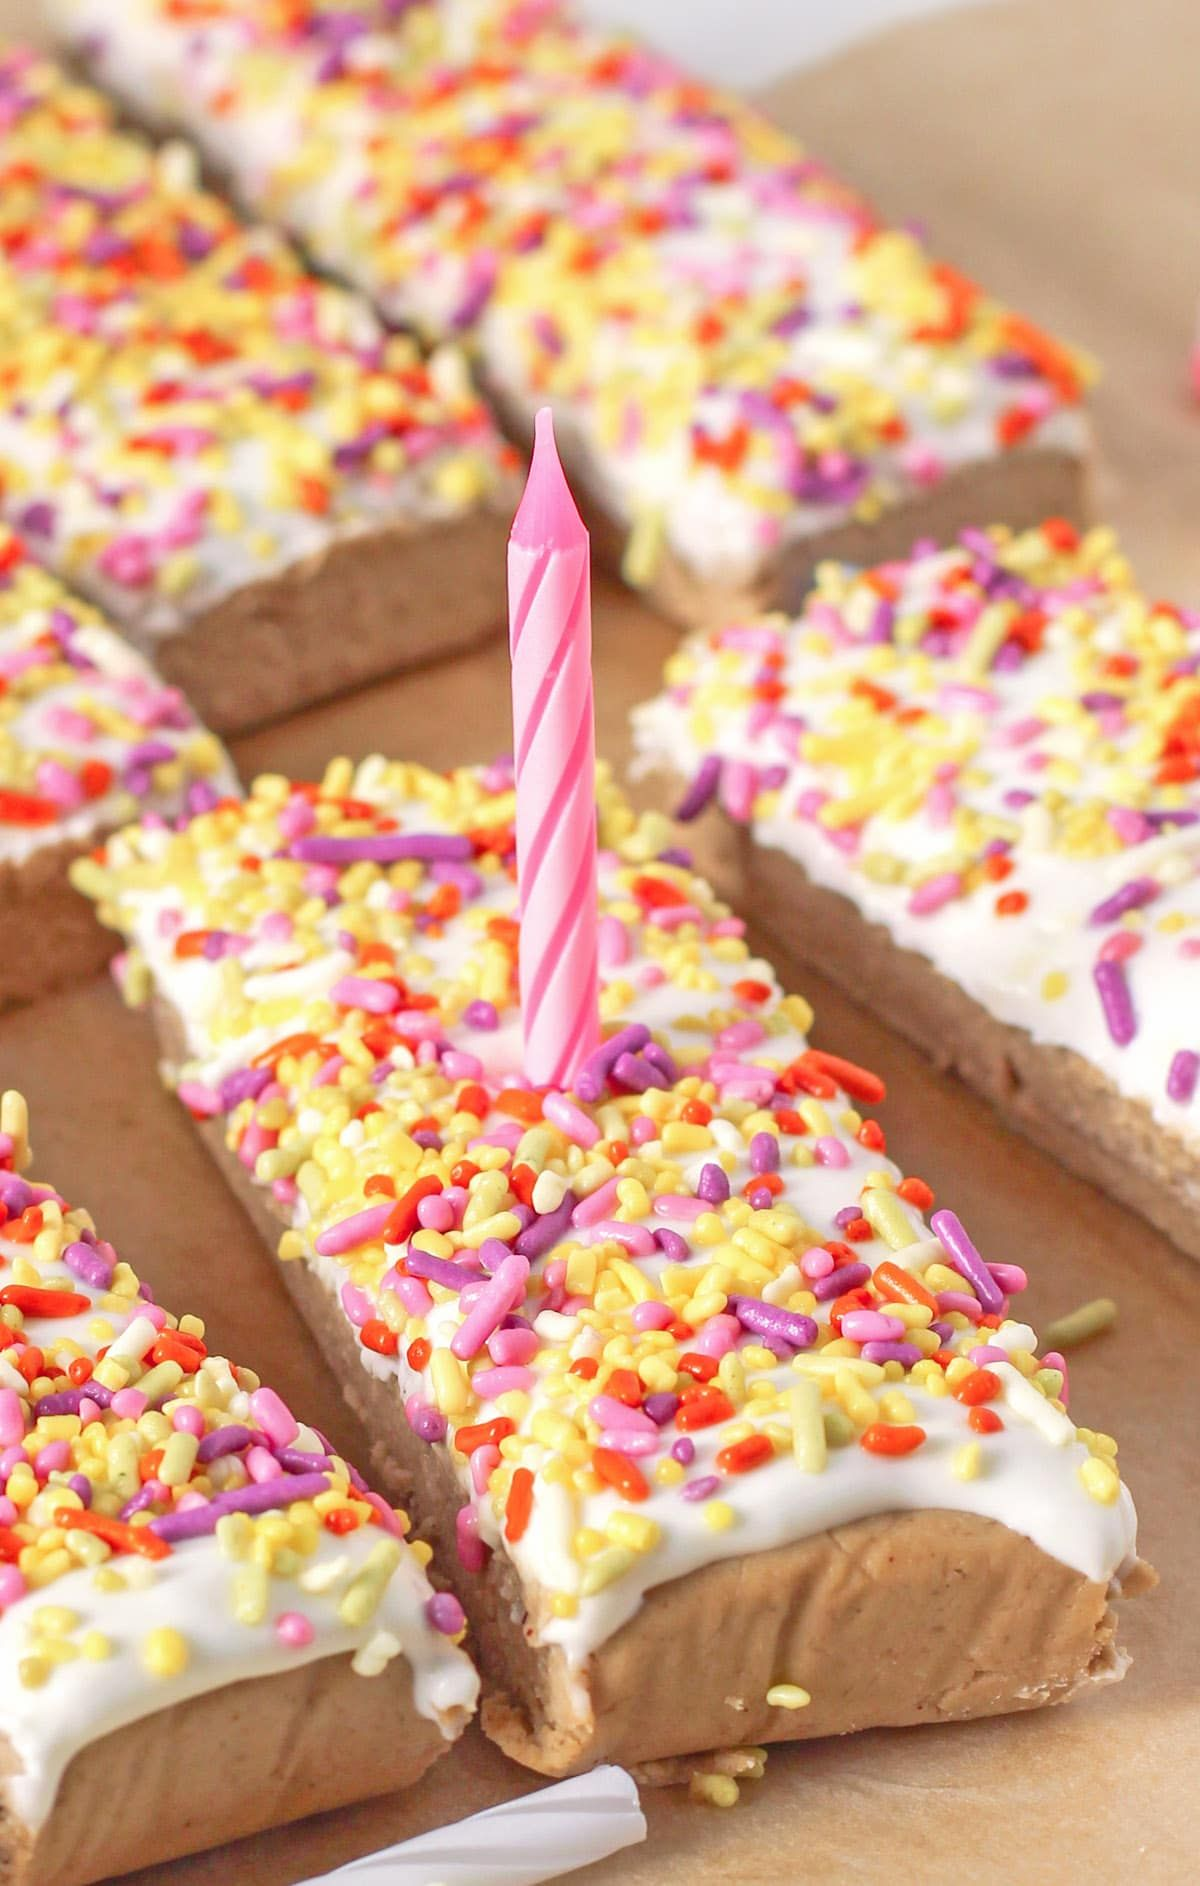 Healthy Birthday Cake Protein Bars with Cream Cheese Frosting and Rainbow Sprinkles